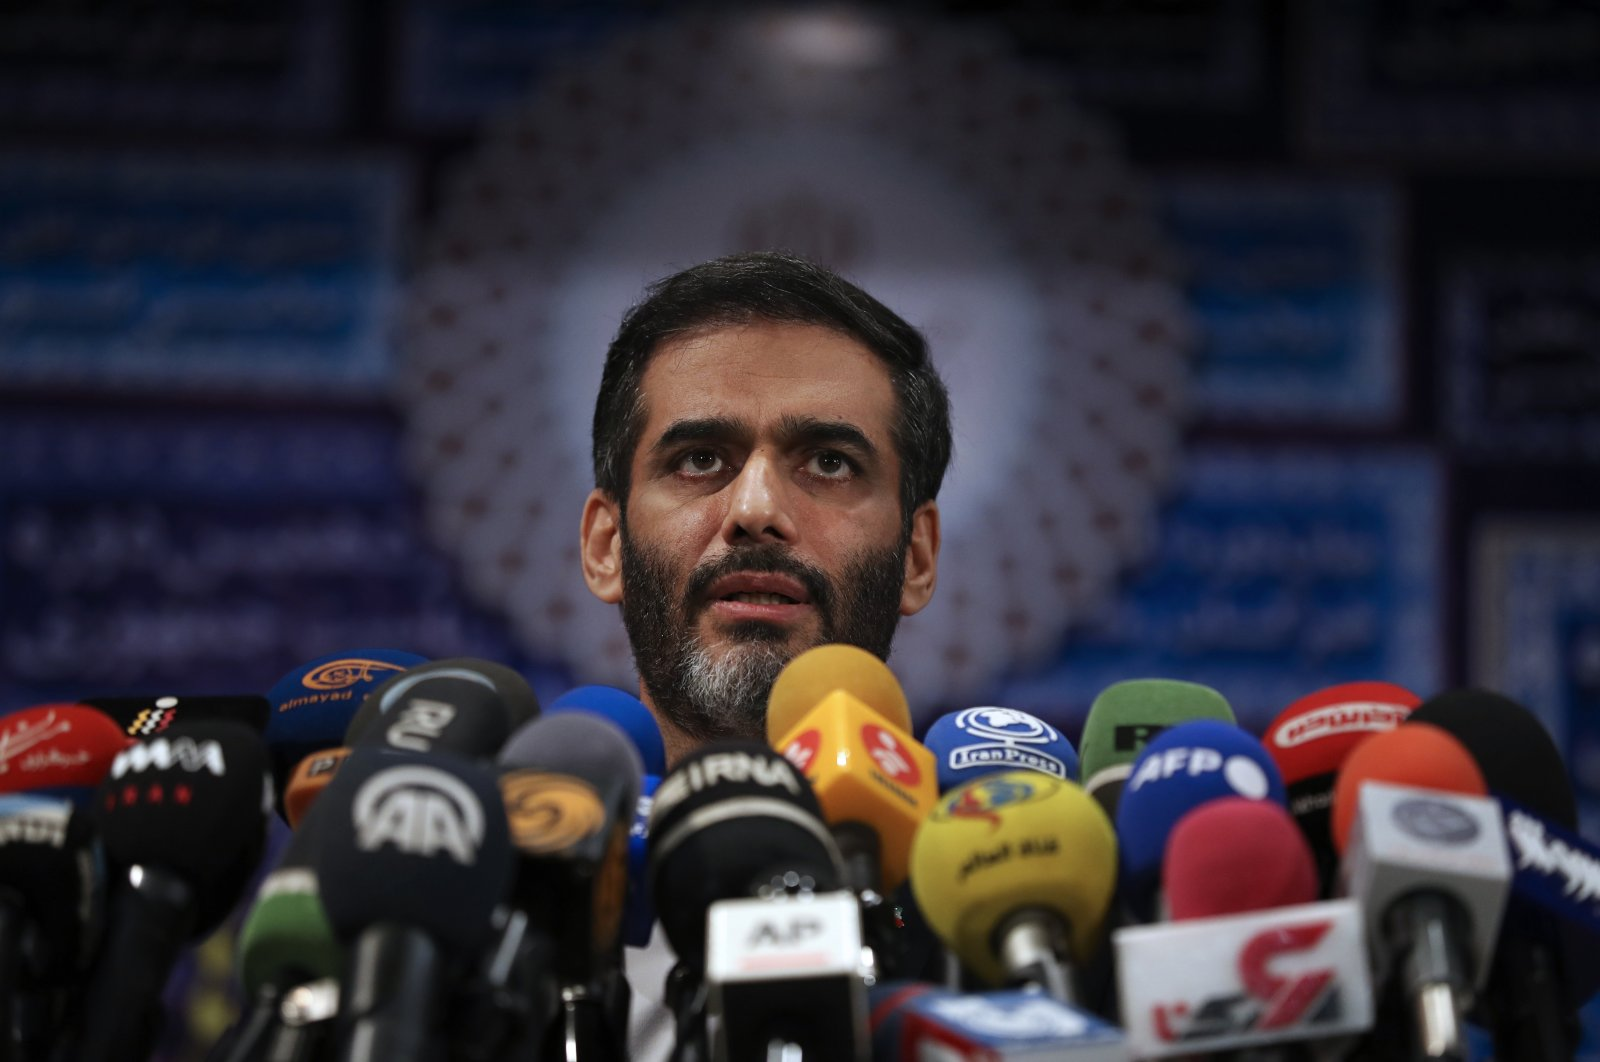 Saeed Mohammad speaks with the media after registering his name as a candidate for the presidential elections in Tehran, Iran, May 11, 2021. (AP Photo)